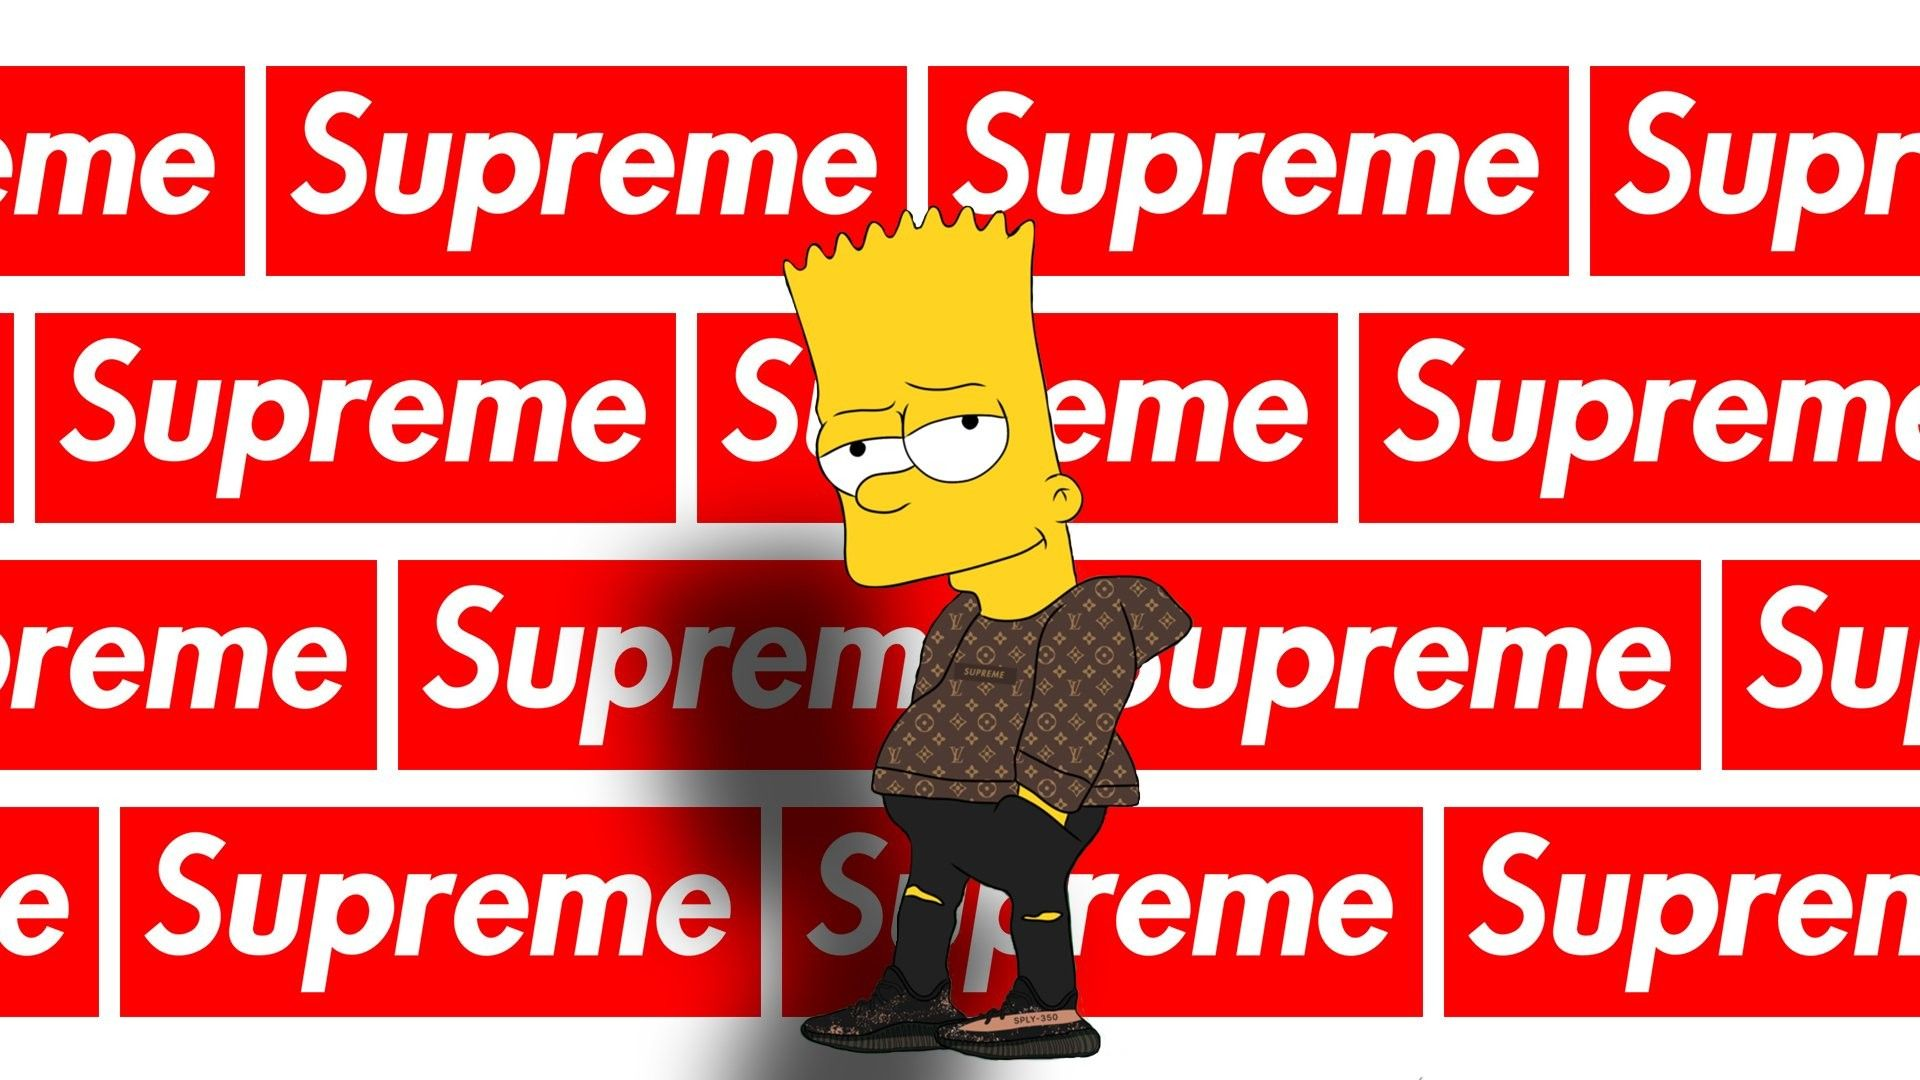 Res 1920x1080 Hd Wallpaper Background Image Id 888641 Products Supreme Supreme Wallpaper Supreme Iphone Wallpaper Supreme Background